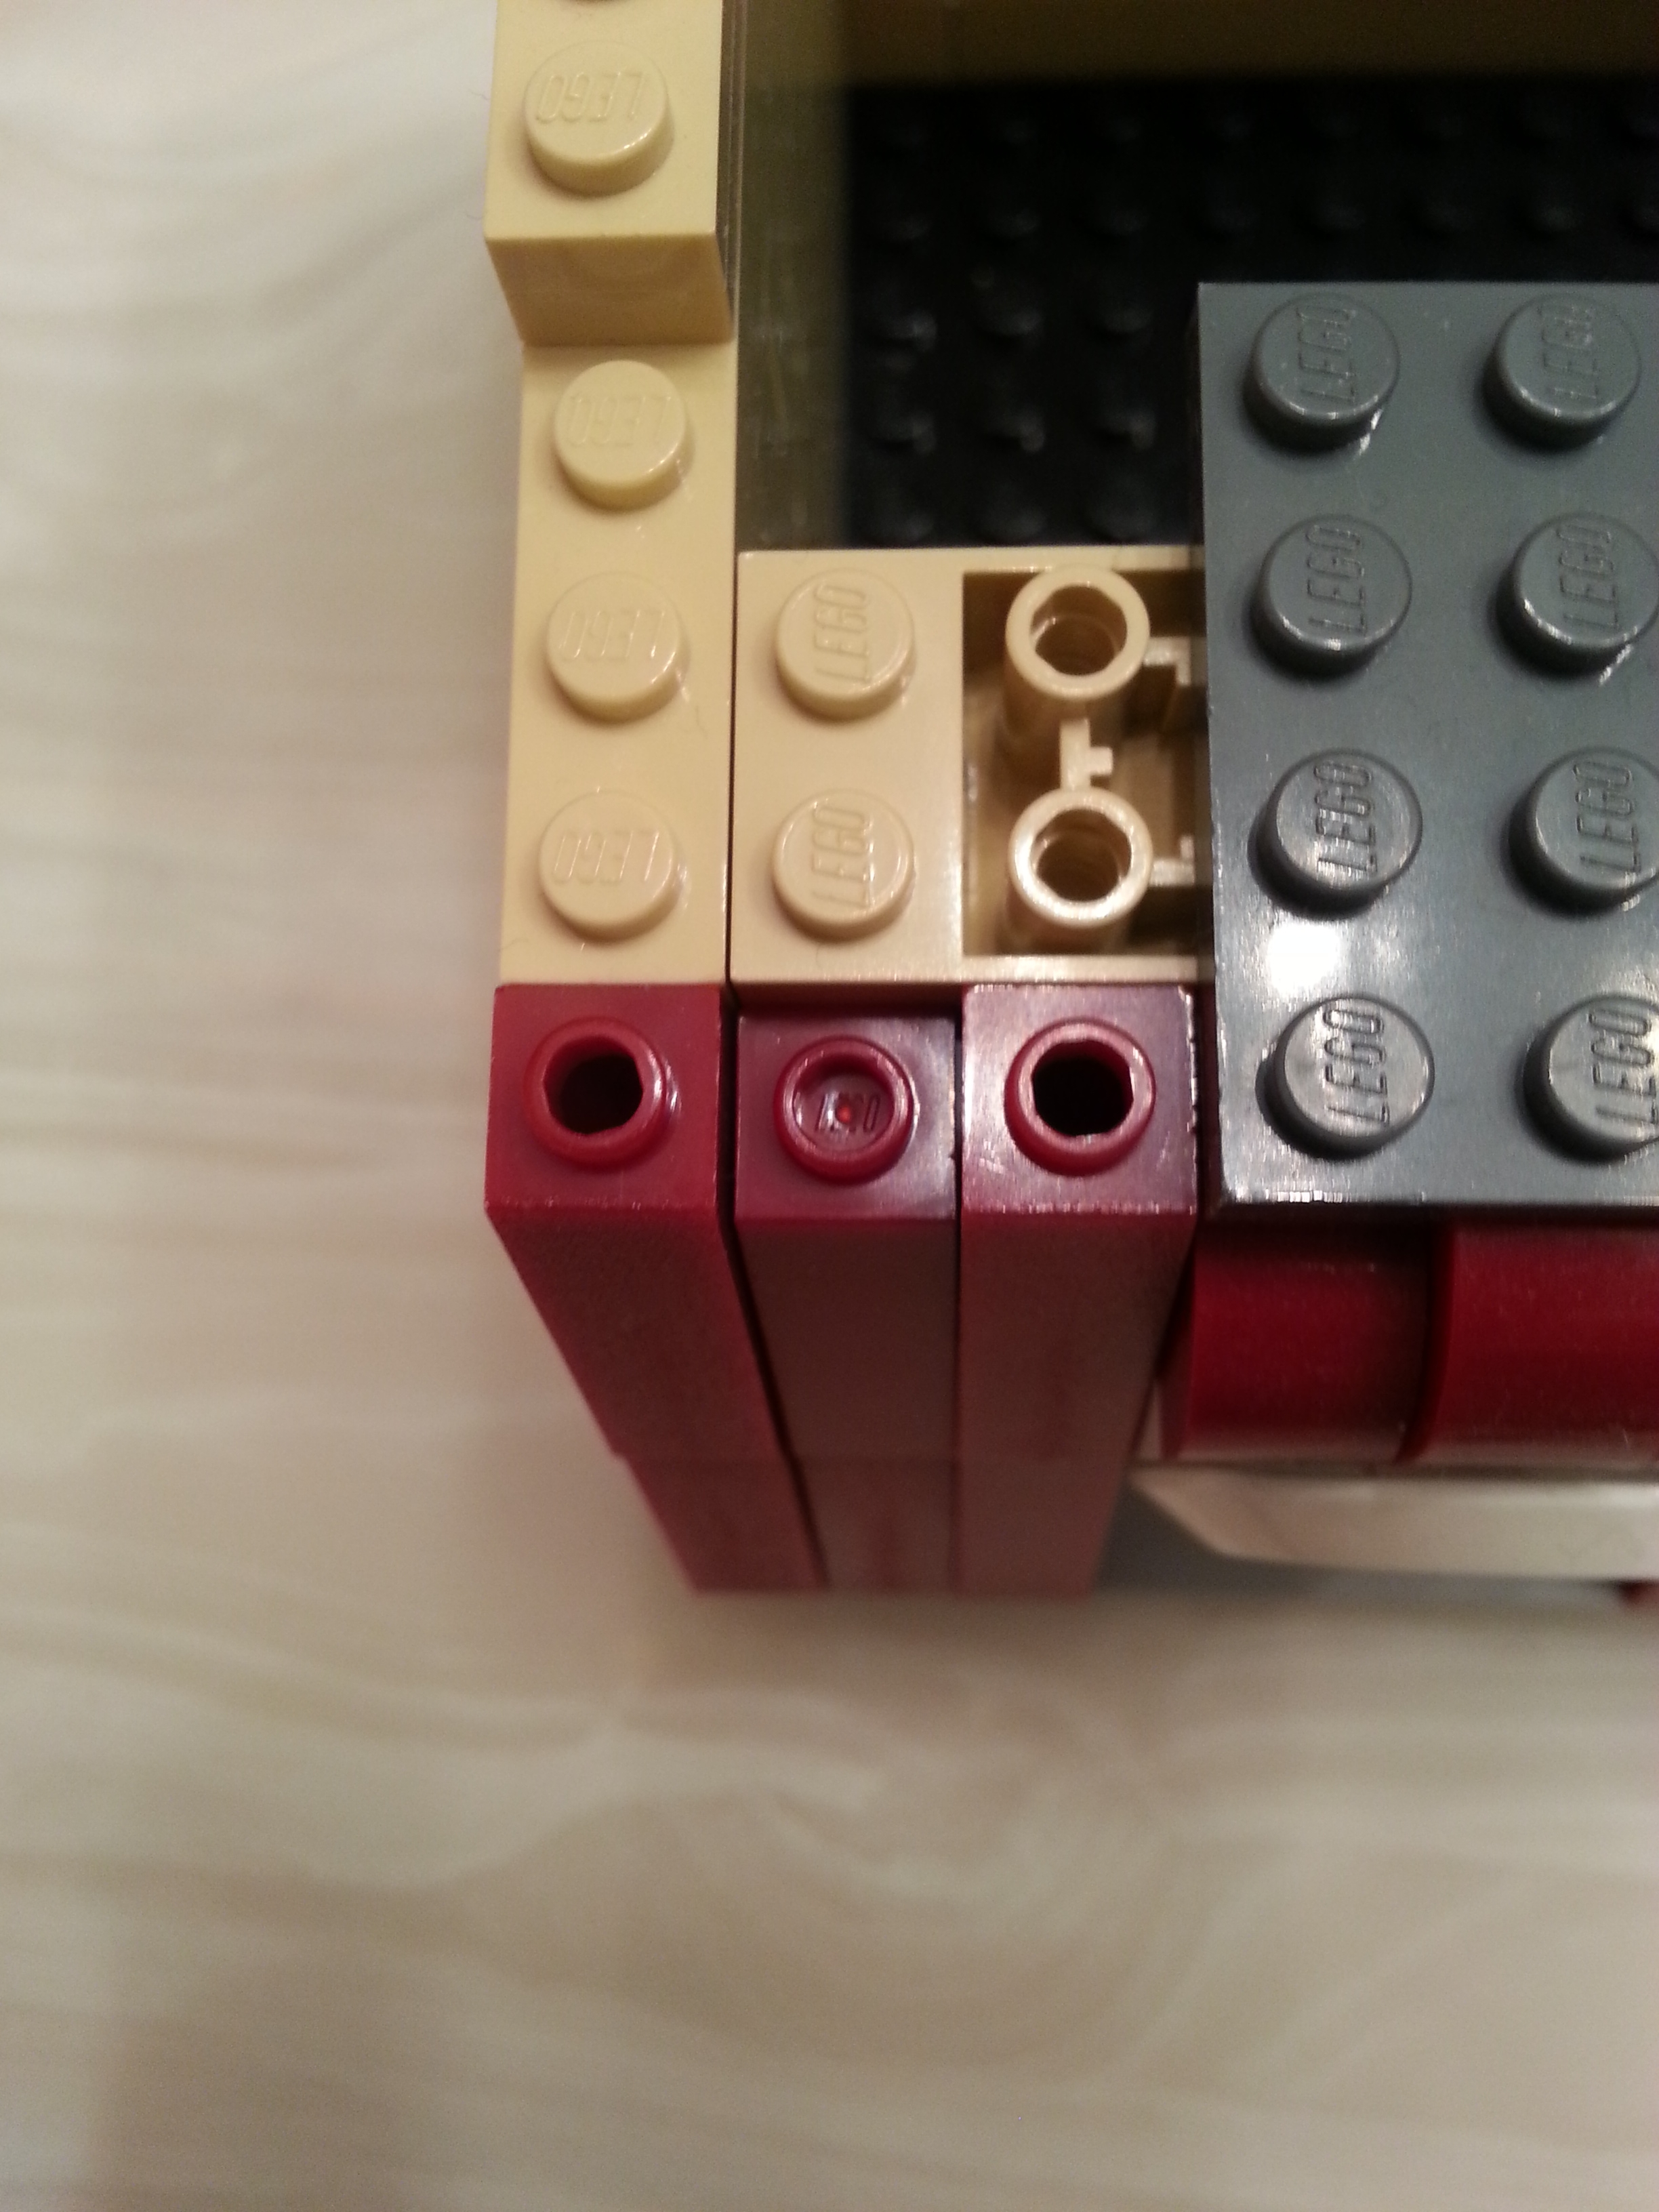 Shades of color Lego bricks must become better because pricing is high so quality must be high as well